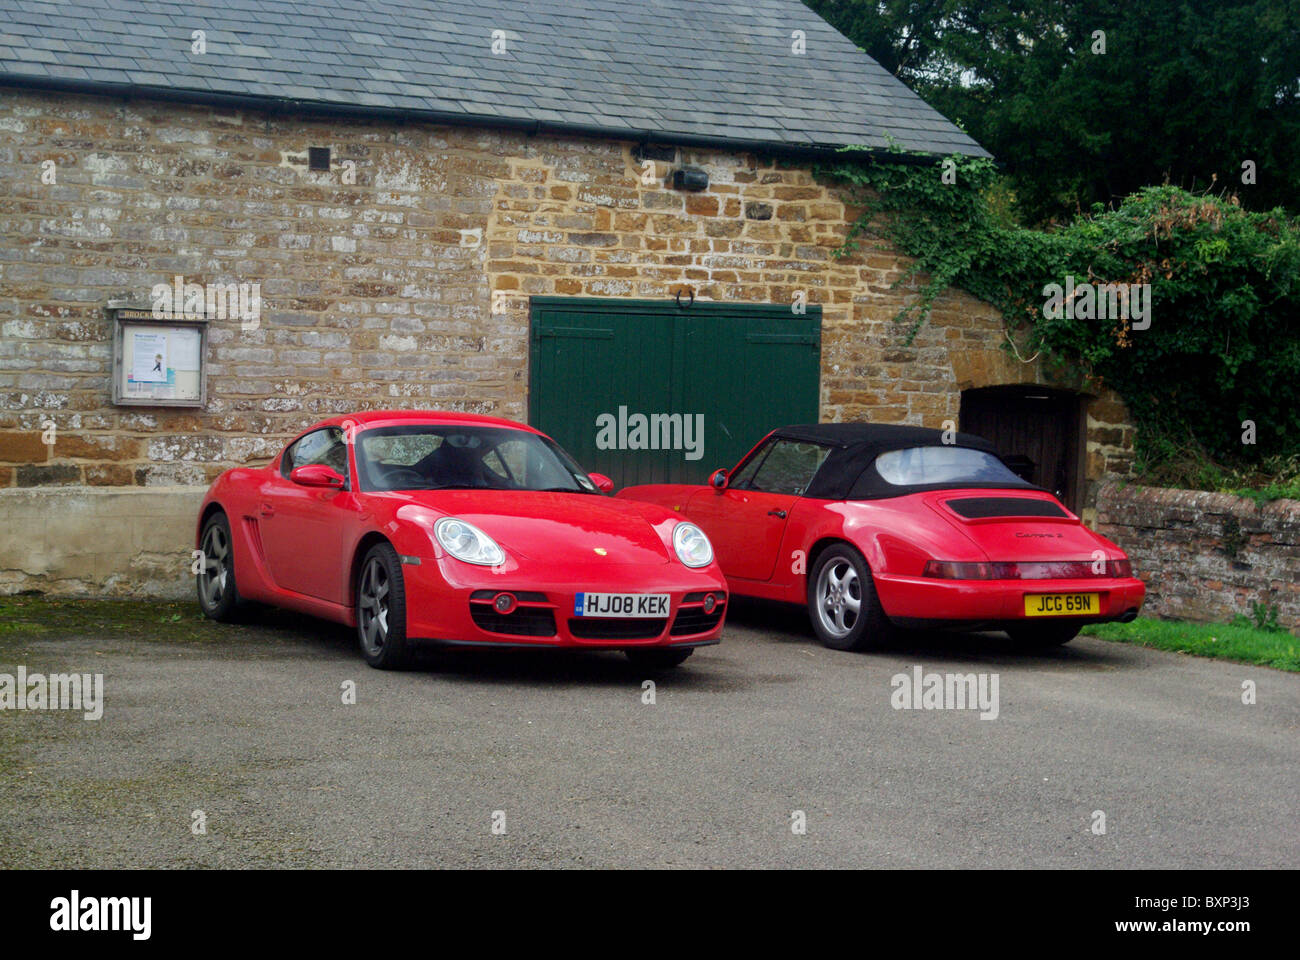 Two red Porsche sports cars outside the village hall, Brockhall, Northamptonshire, UK - Stock Image